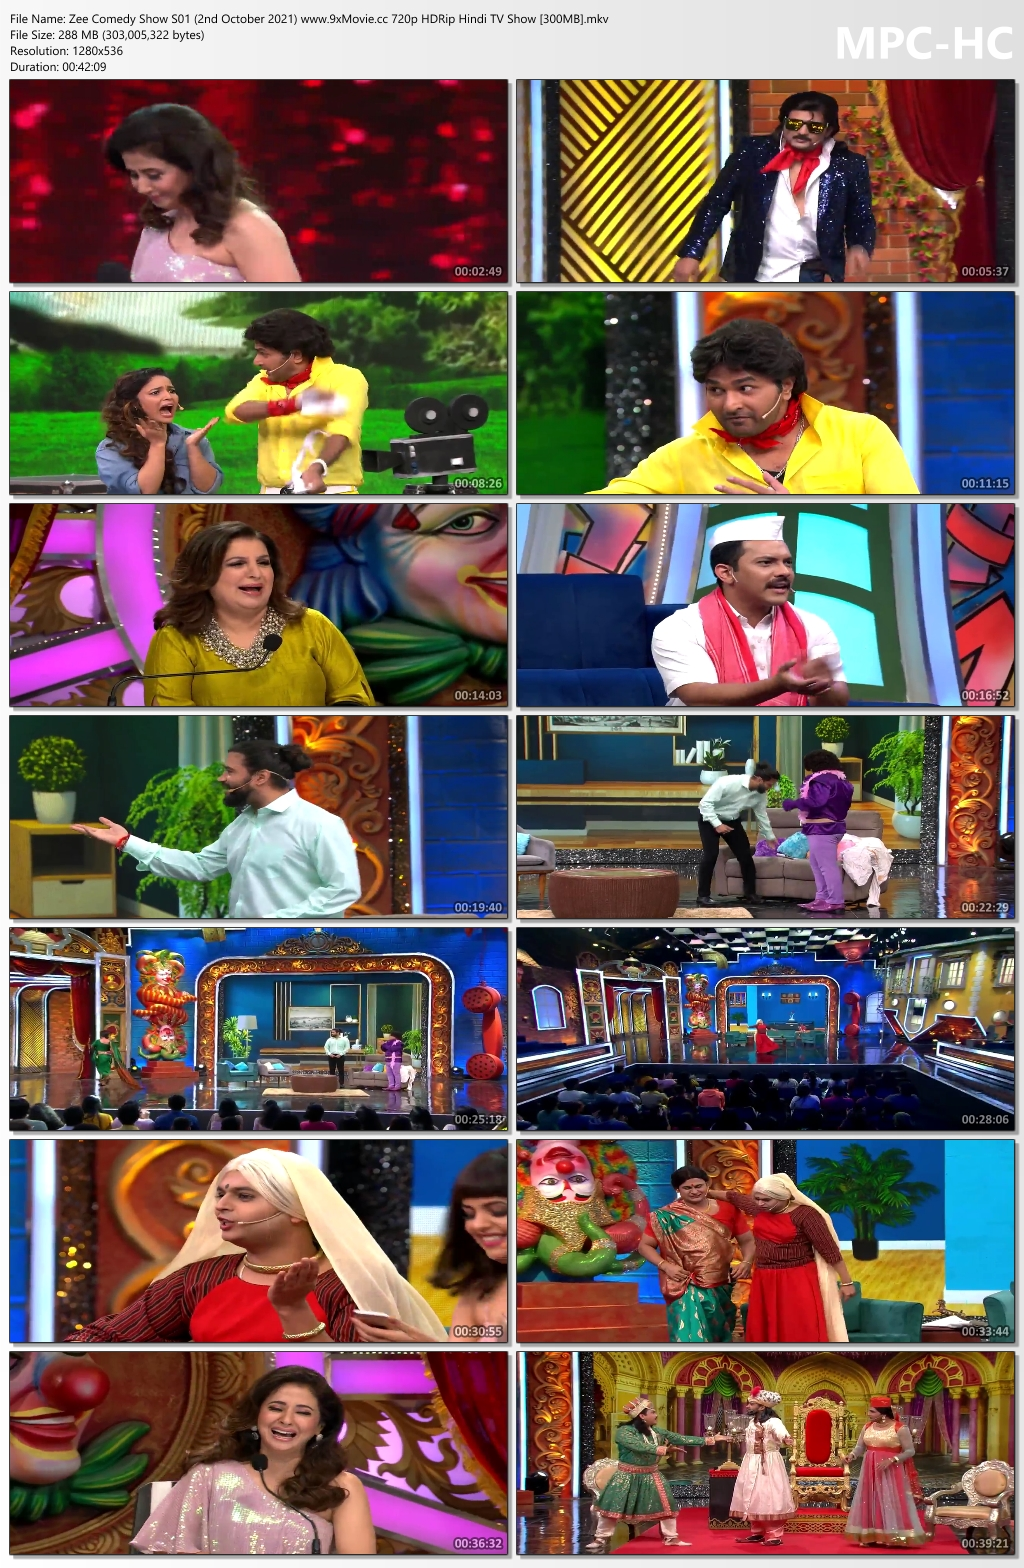 Zee-Comedy-Show-S01-2nd-October-2021-www-9x-Movie-cc-720p-HDRip-Hindi-TV-Show-300-MB-mkv